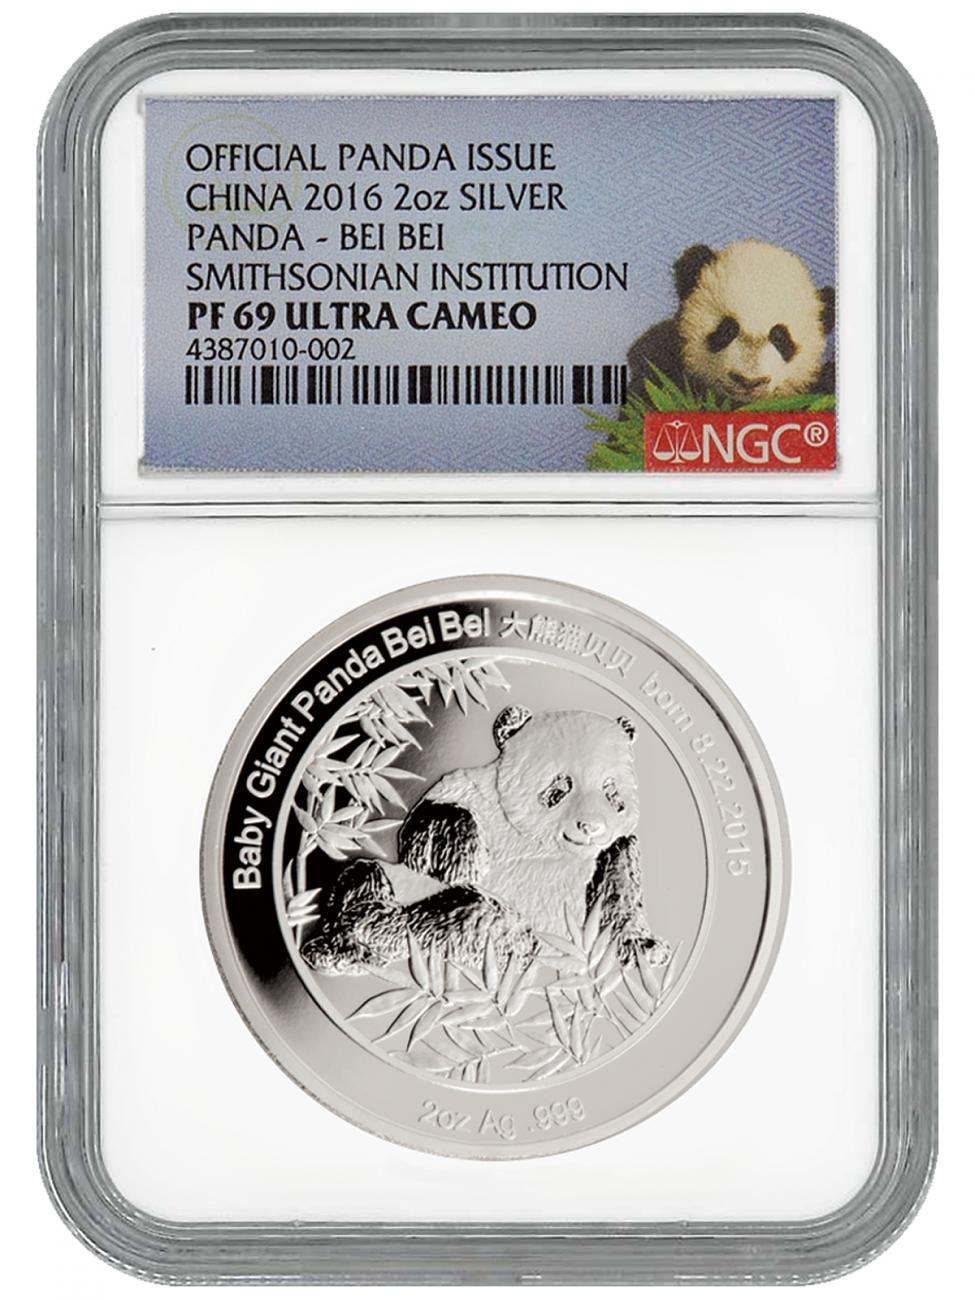 2016 China Bei Bei Smithsonian Institution Official Mint Medal 2 oz Silver Proof Medal Scarce and Unique Coin Division NGC PF69 UC